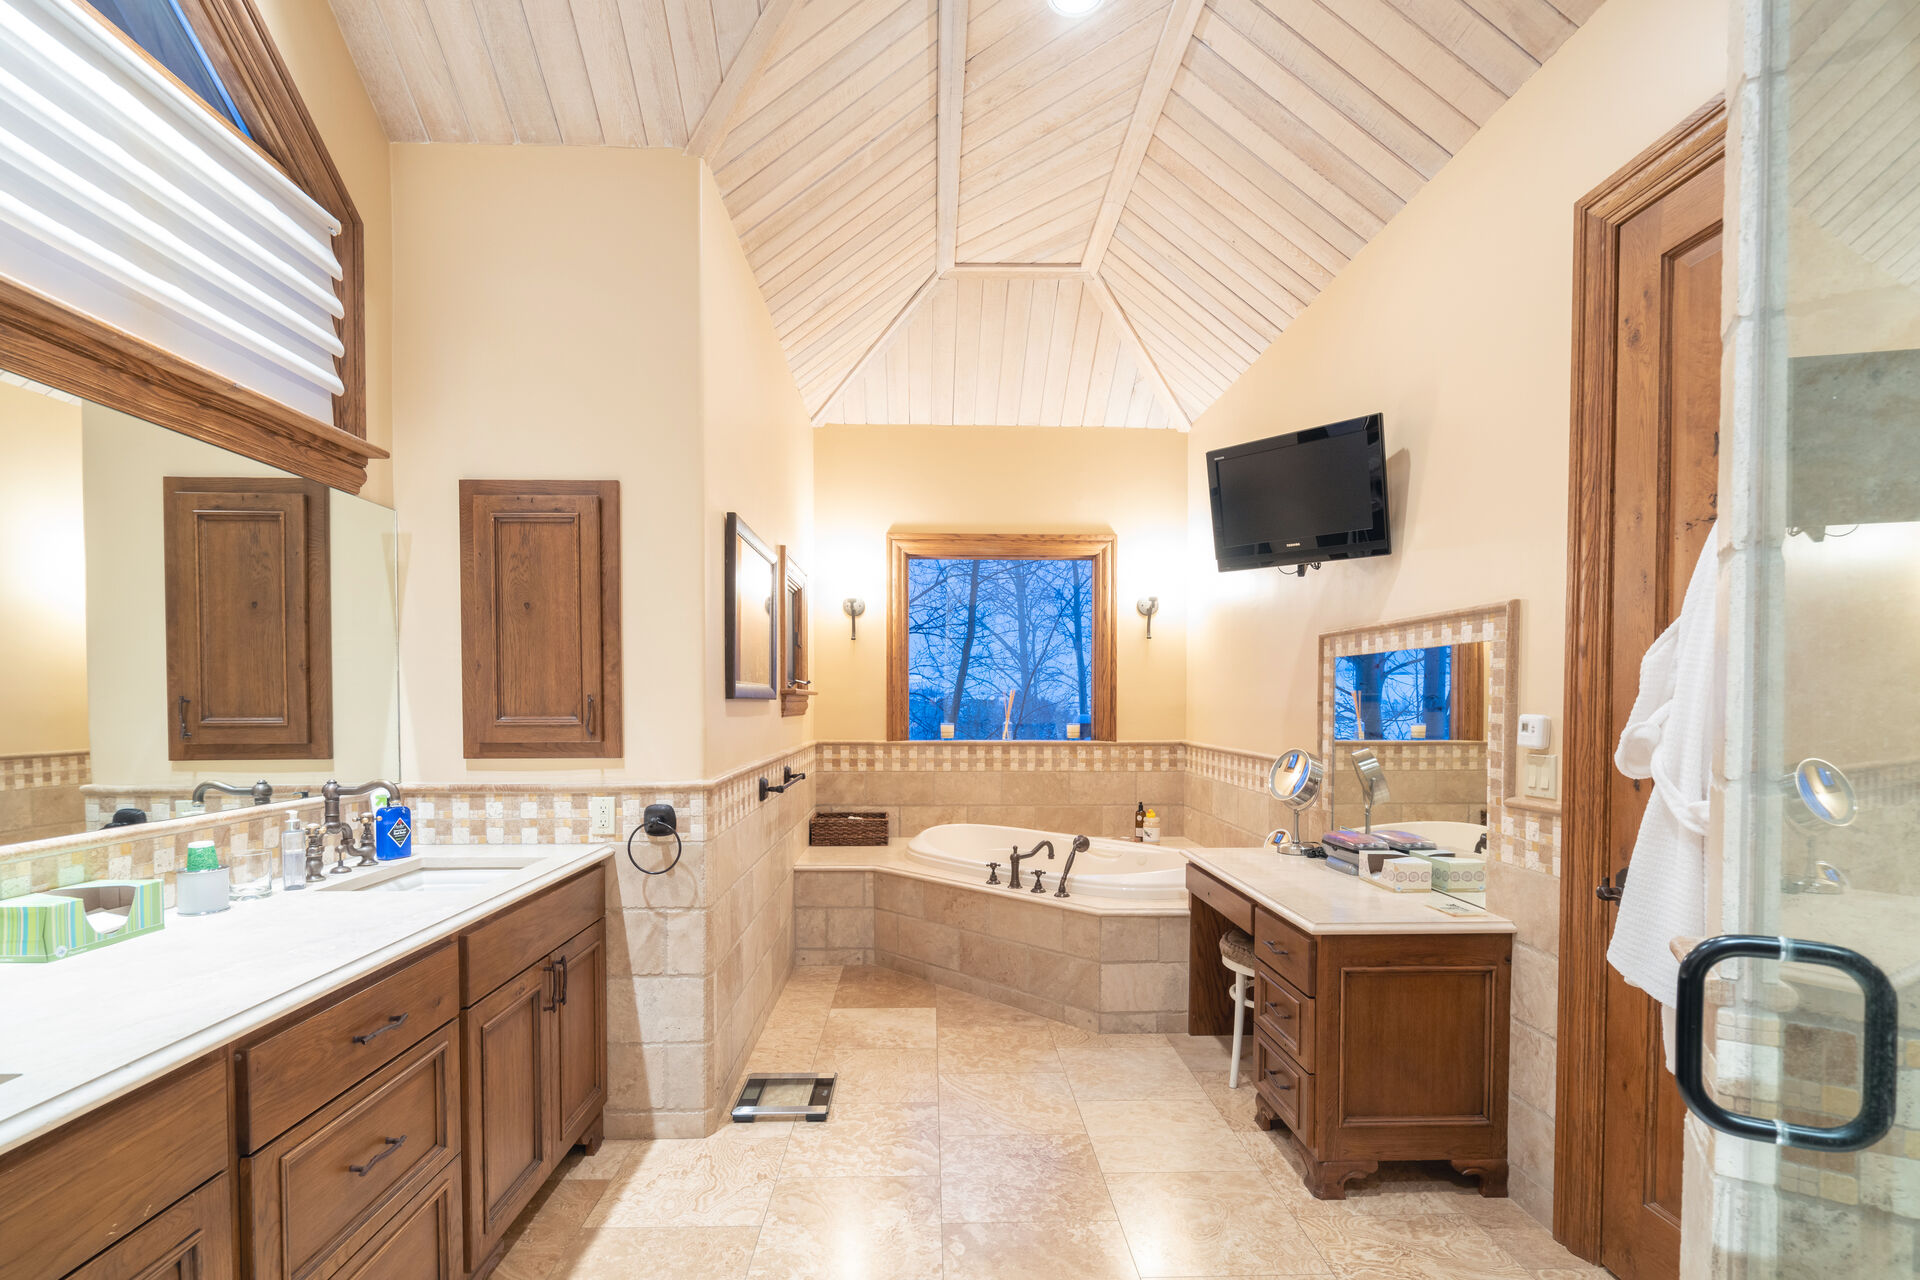 Bathroom with spa tub, vanity sinks, and wall-mounted TV.